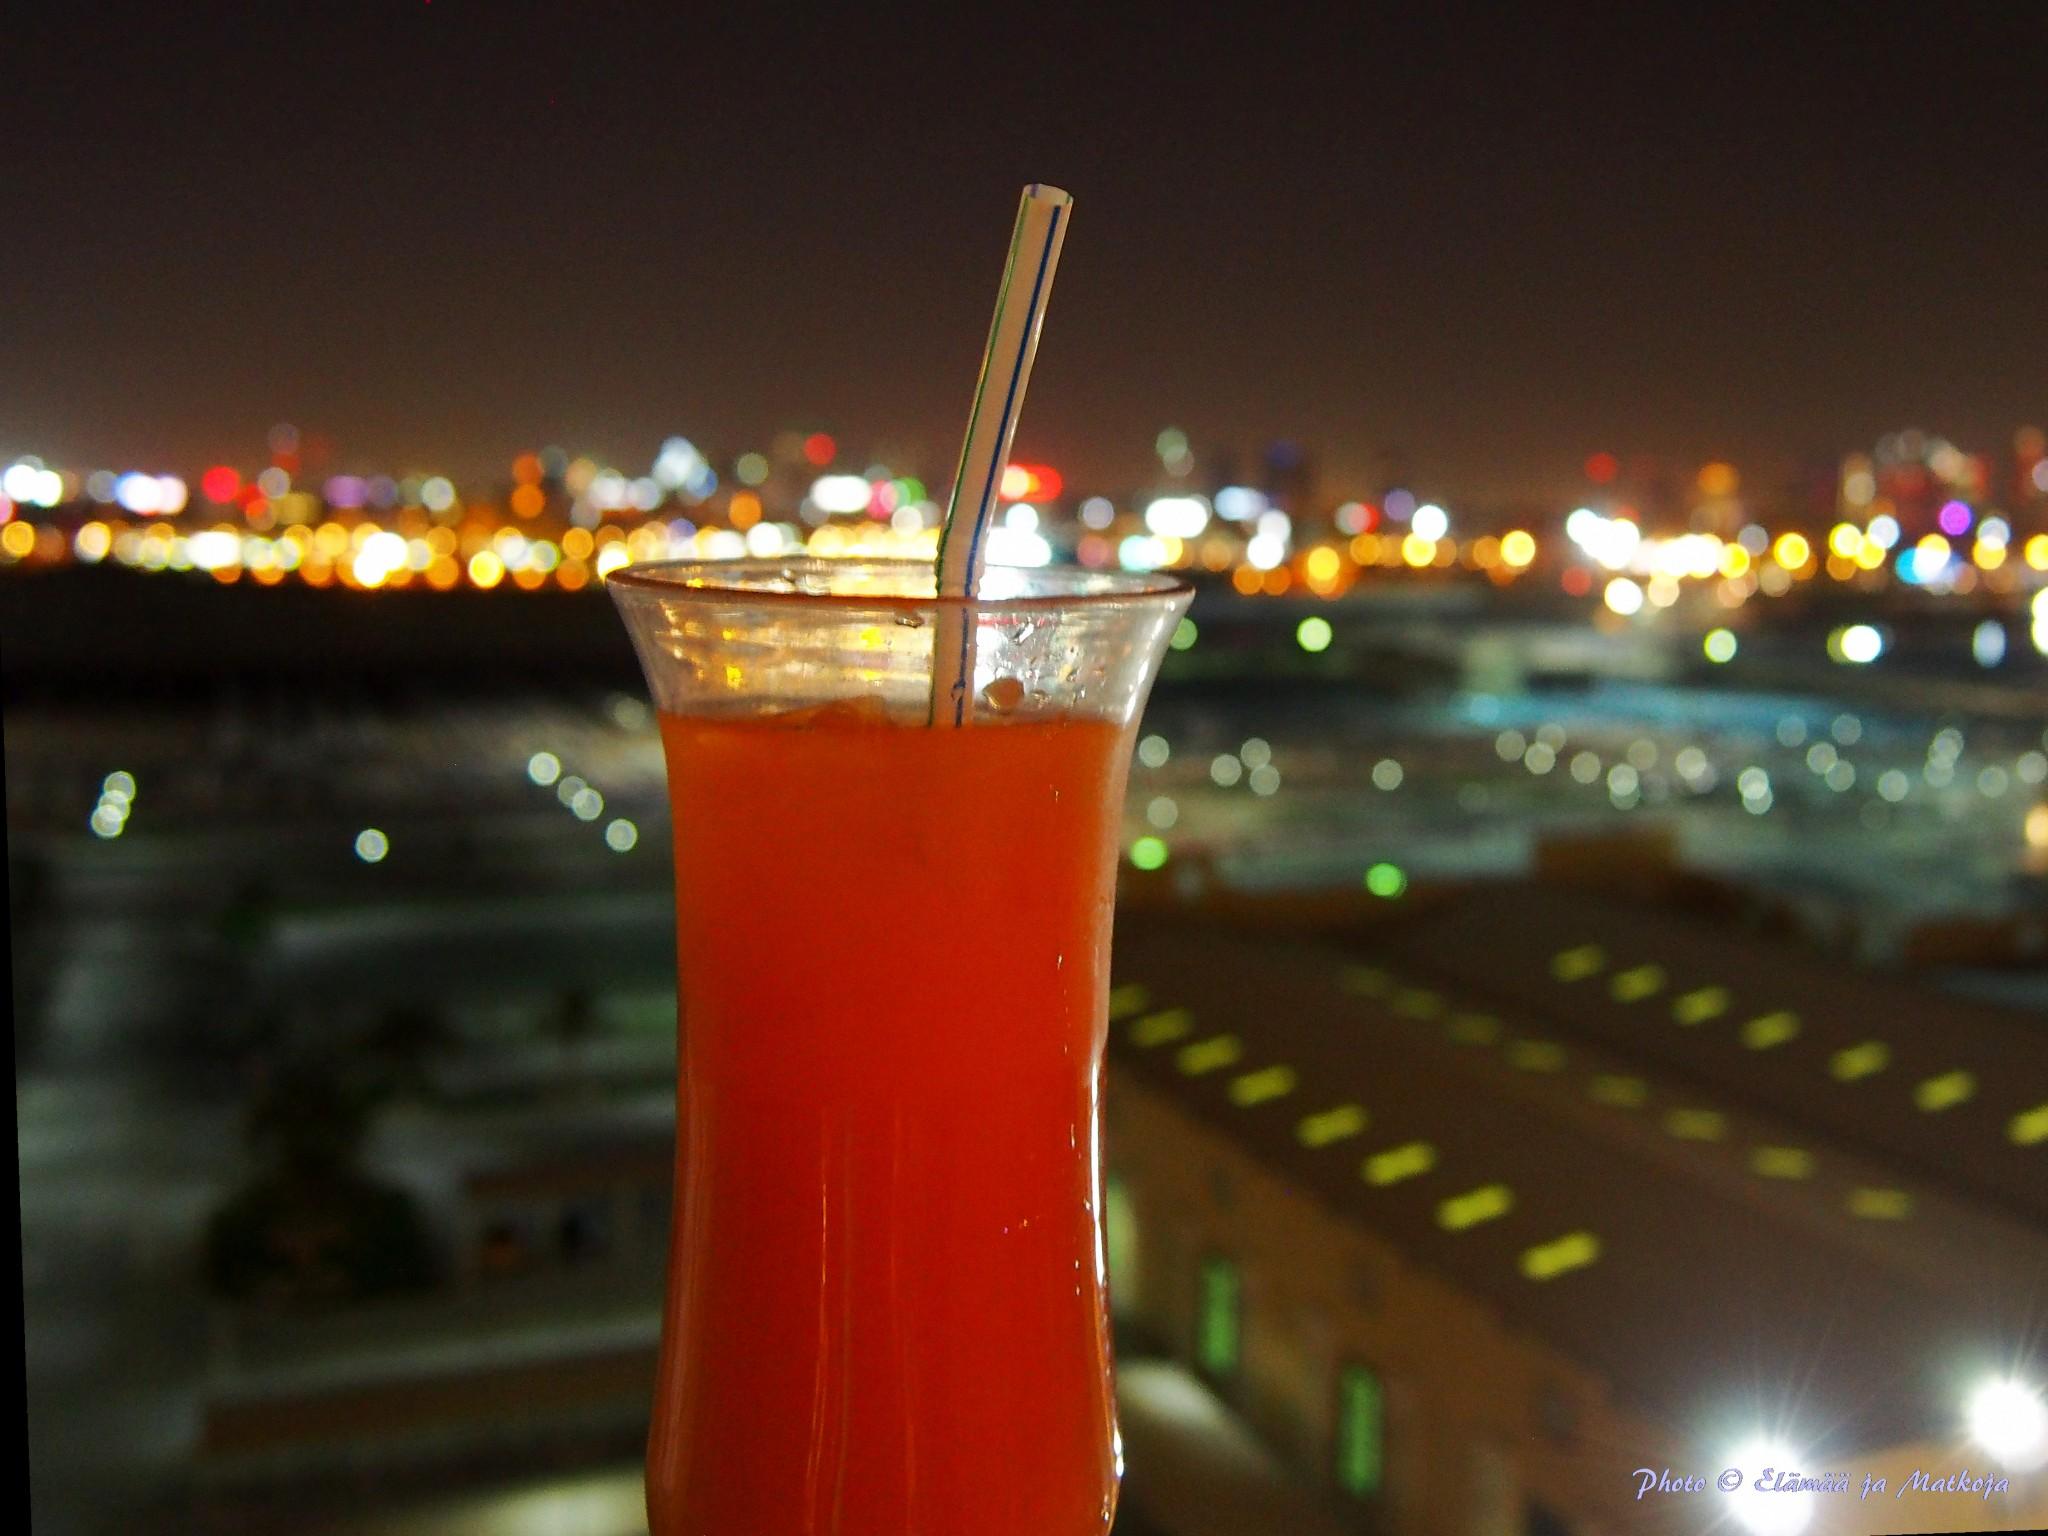 MSC Fantasia drink at Dubai port Photo © Elämää ja Matkoja